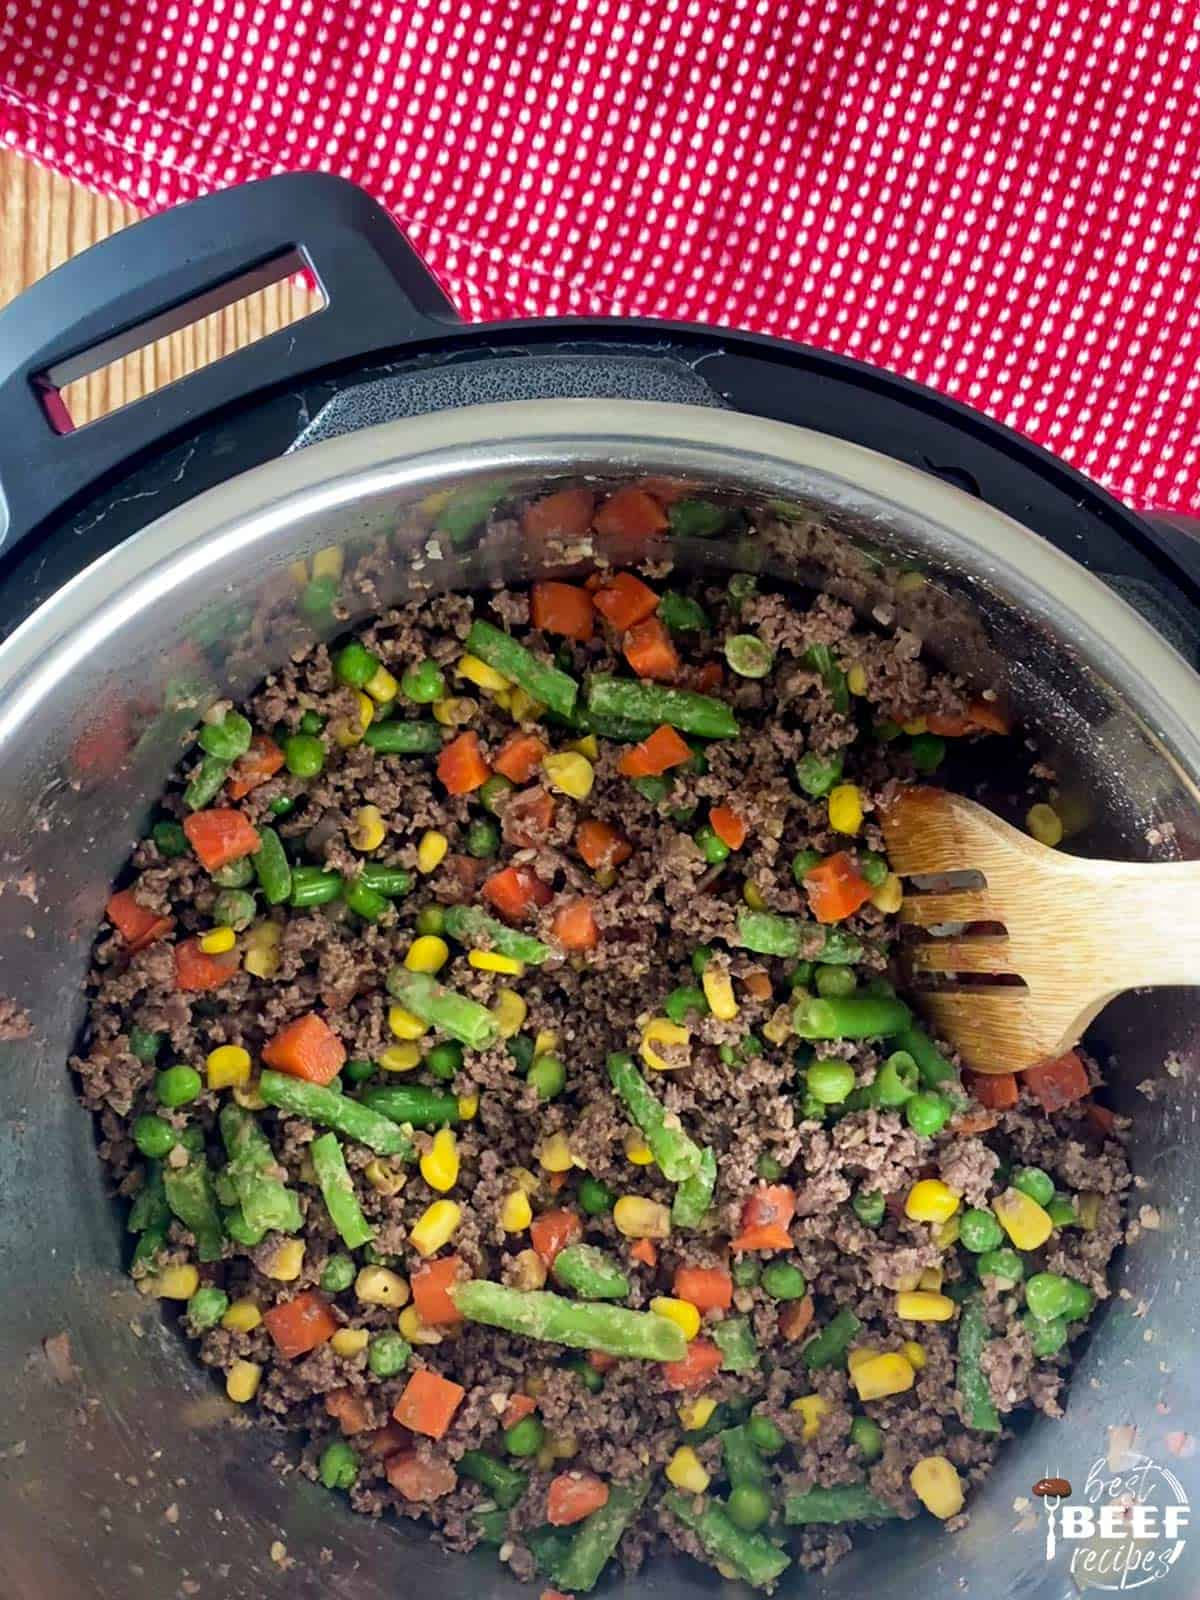 Mixed vegetables and ground beef cooking in the instant pot